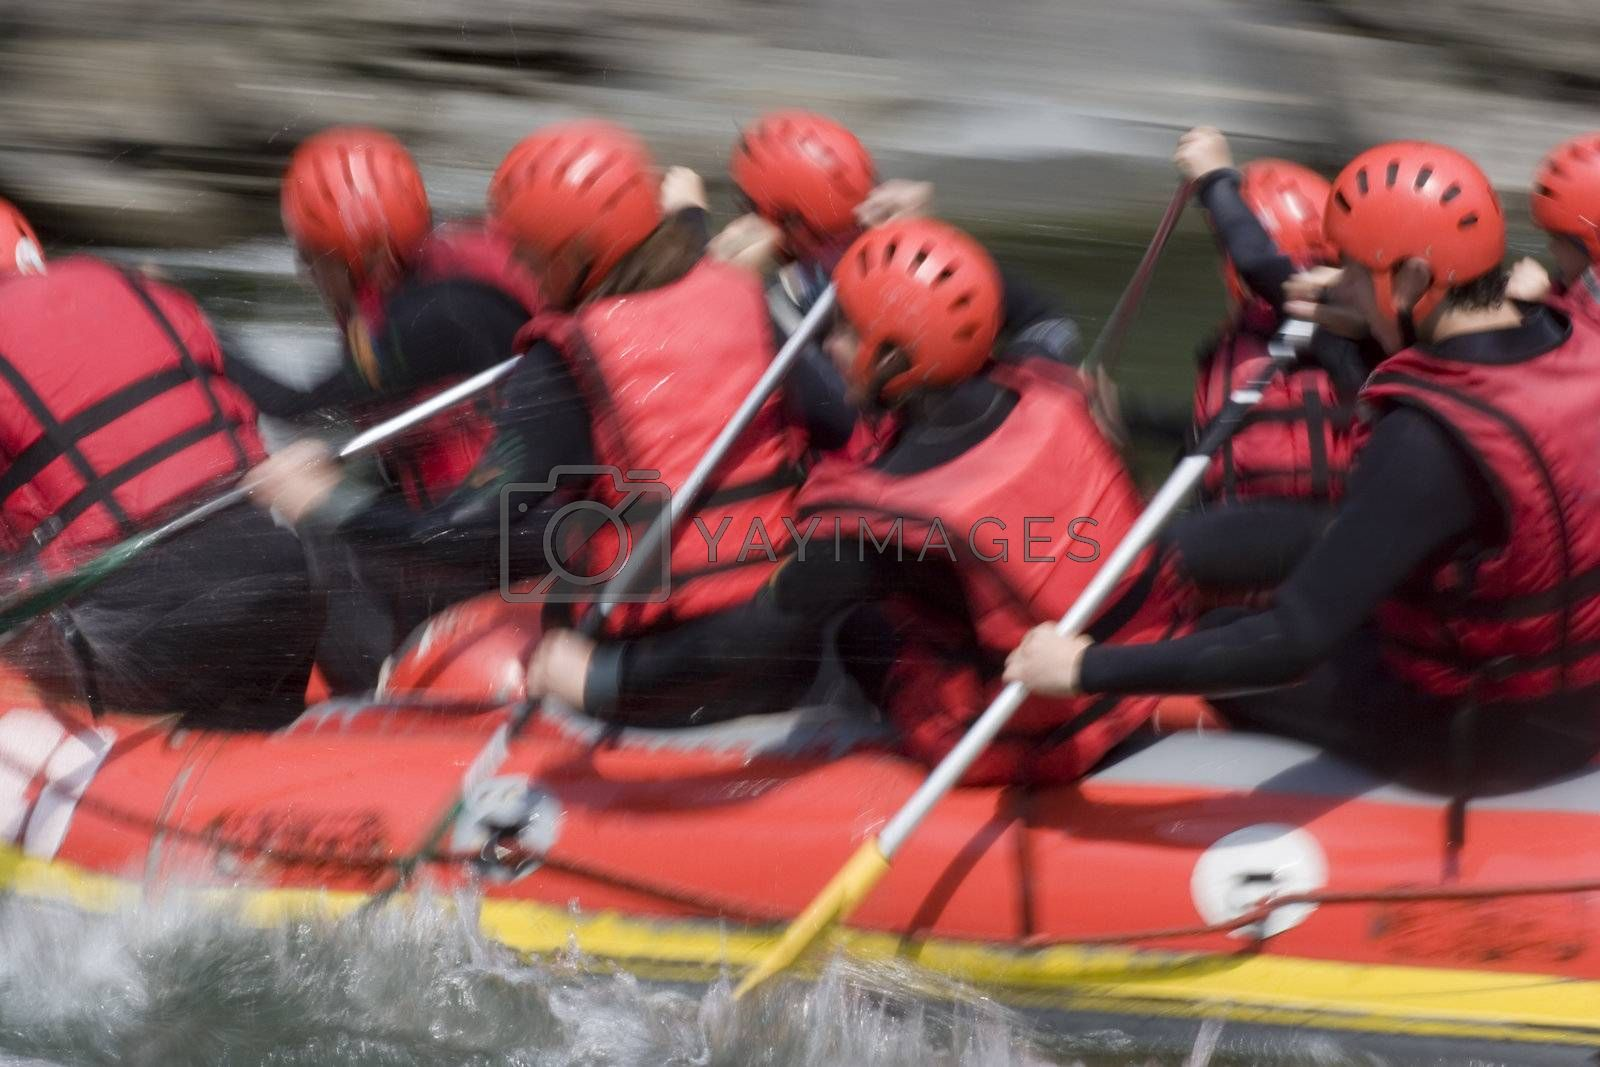 A red rafting team in action on whitewater. With tripod and long exposure time - motion blurred.